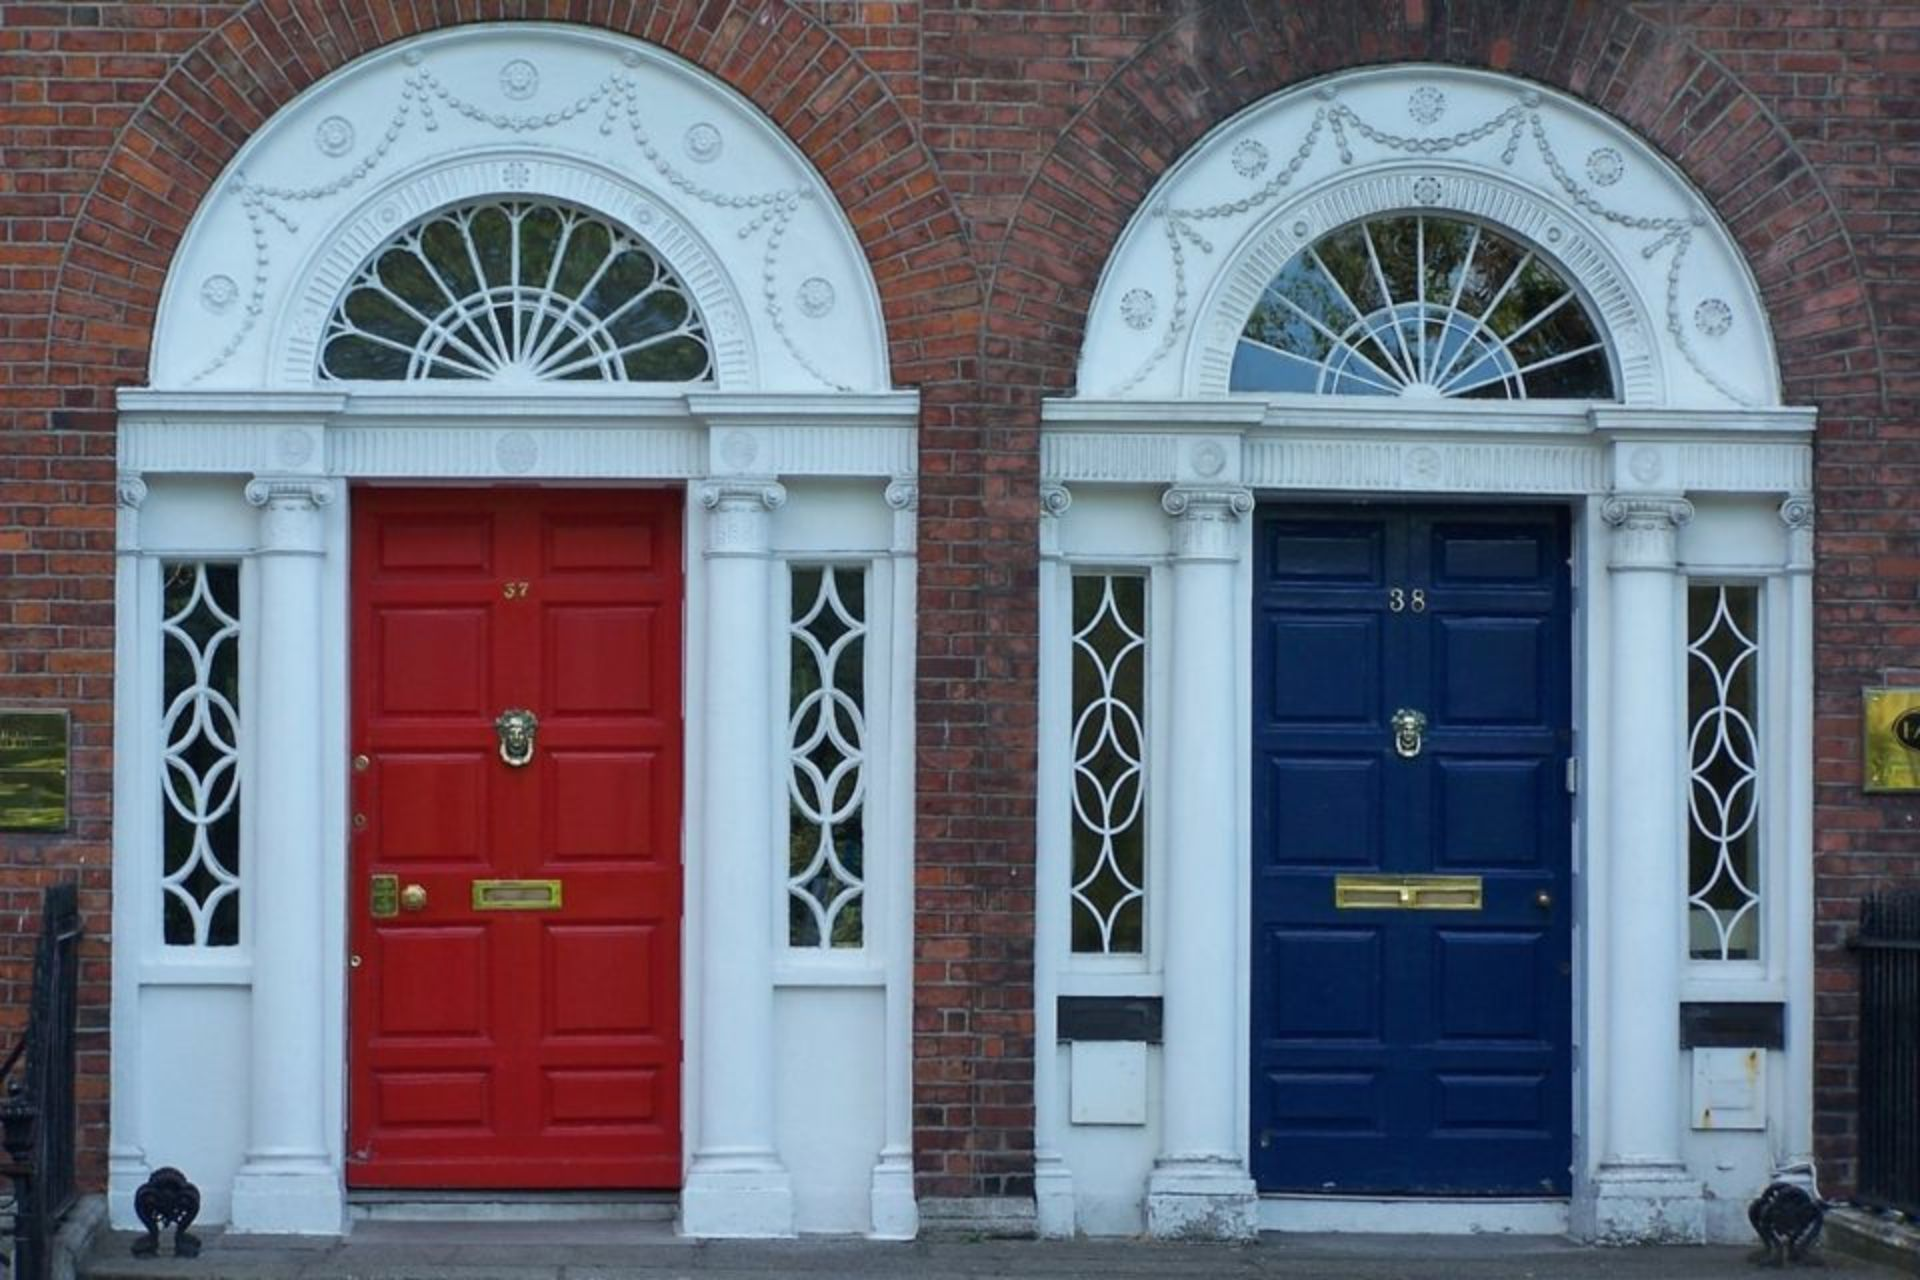 Transform Your Home With a Front Door Makeover – The Richard Hopkinson Team